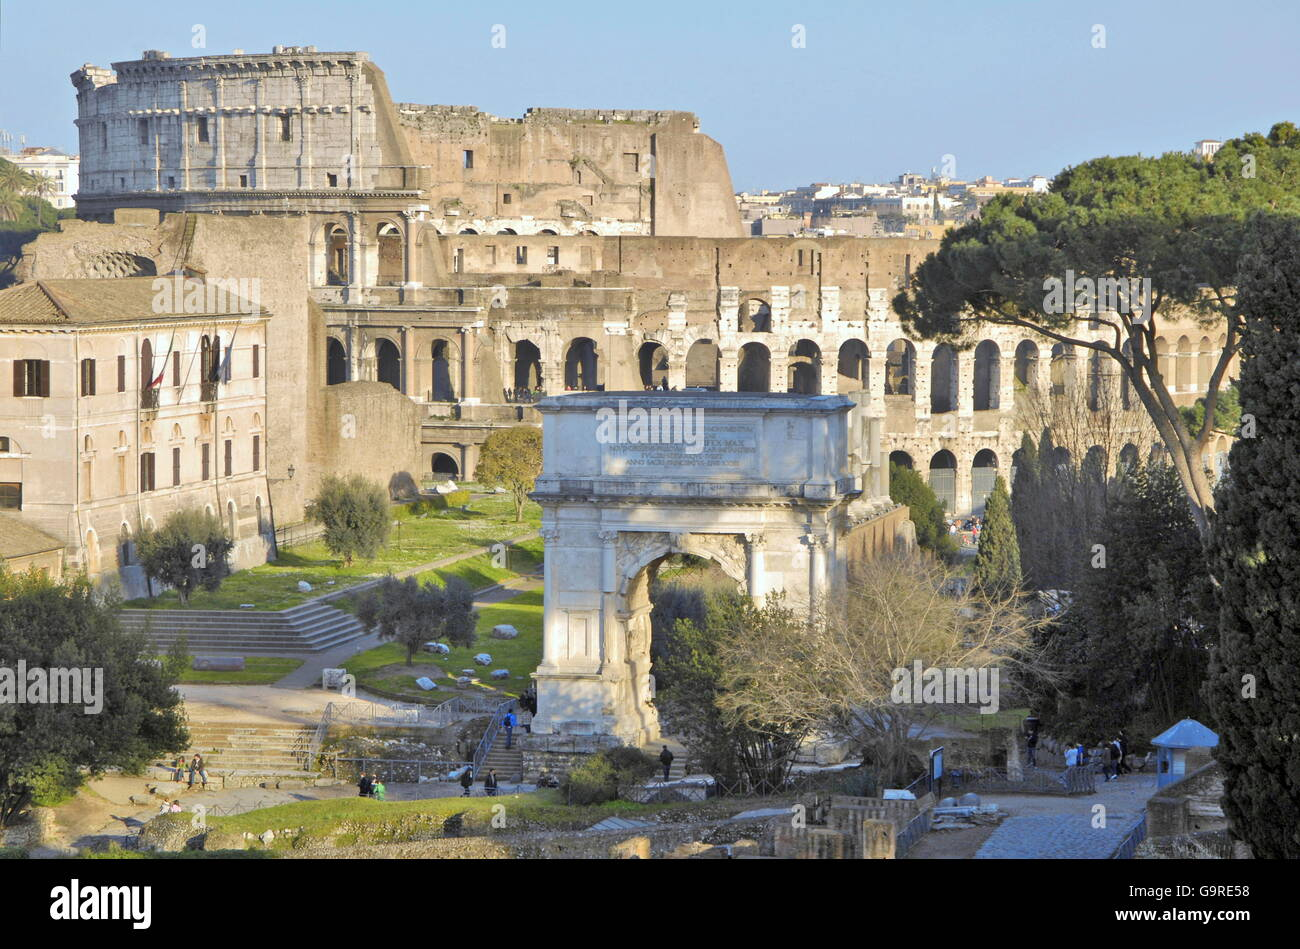 Titus Arch, view on colosseum, Foro Romano, Rome, Italy - Stock Image